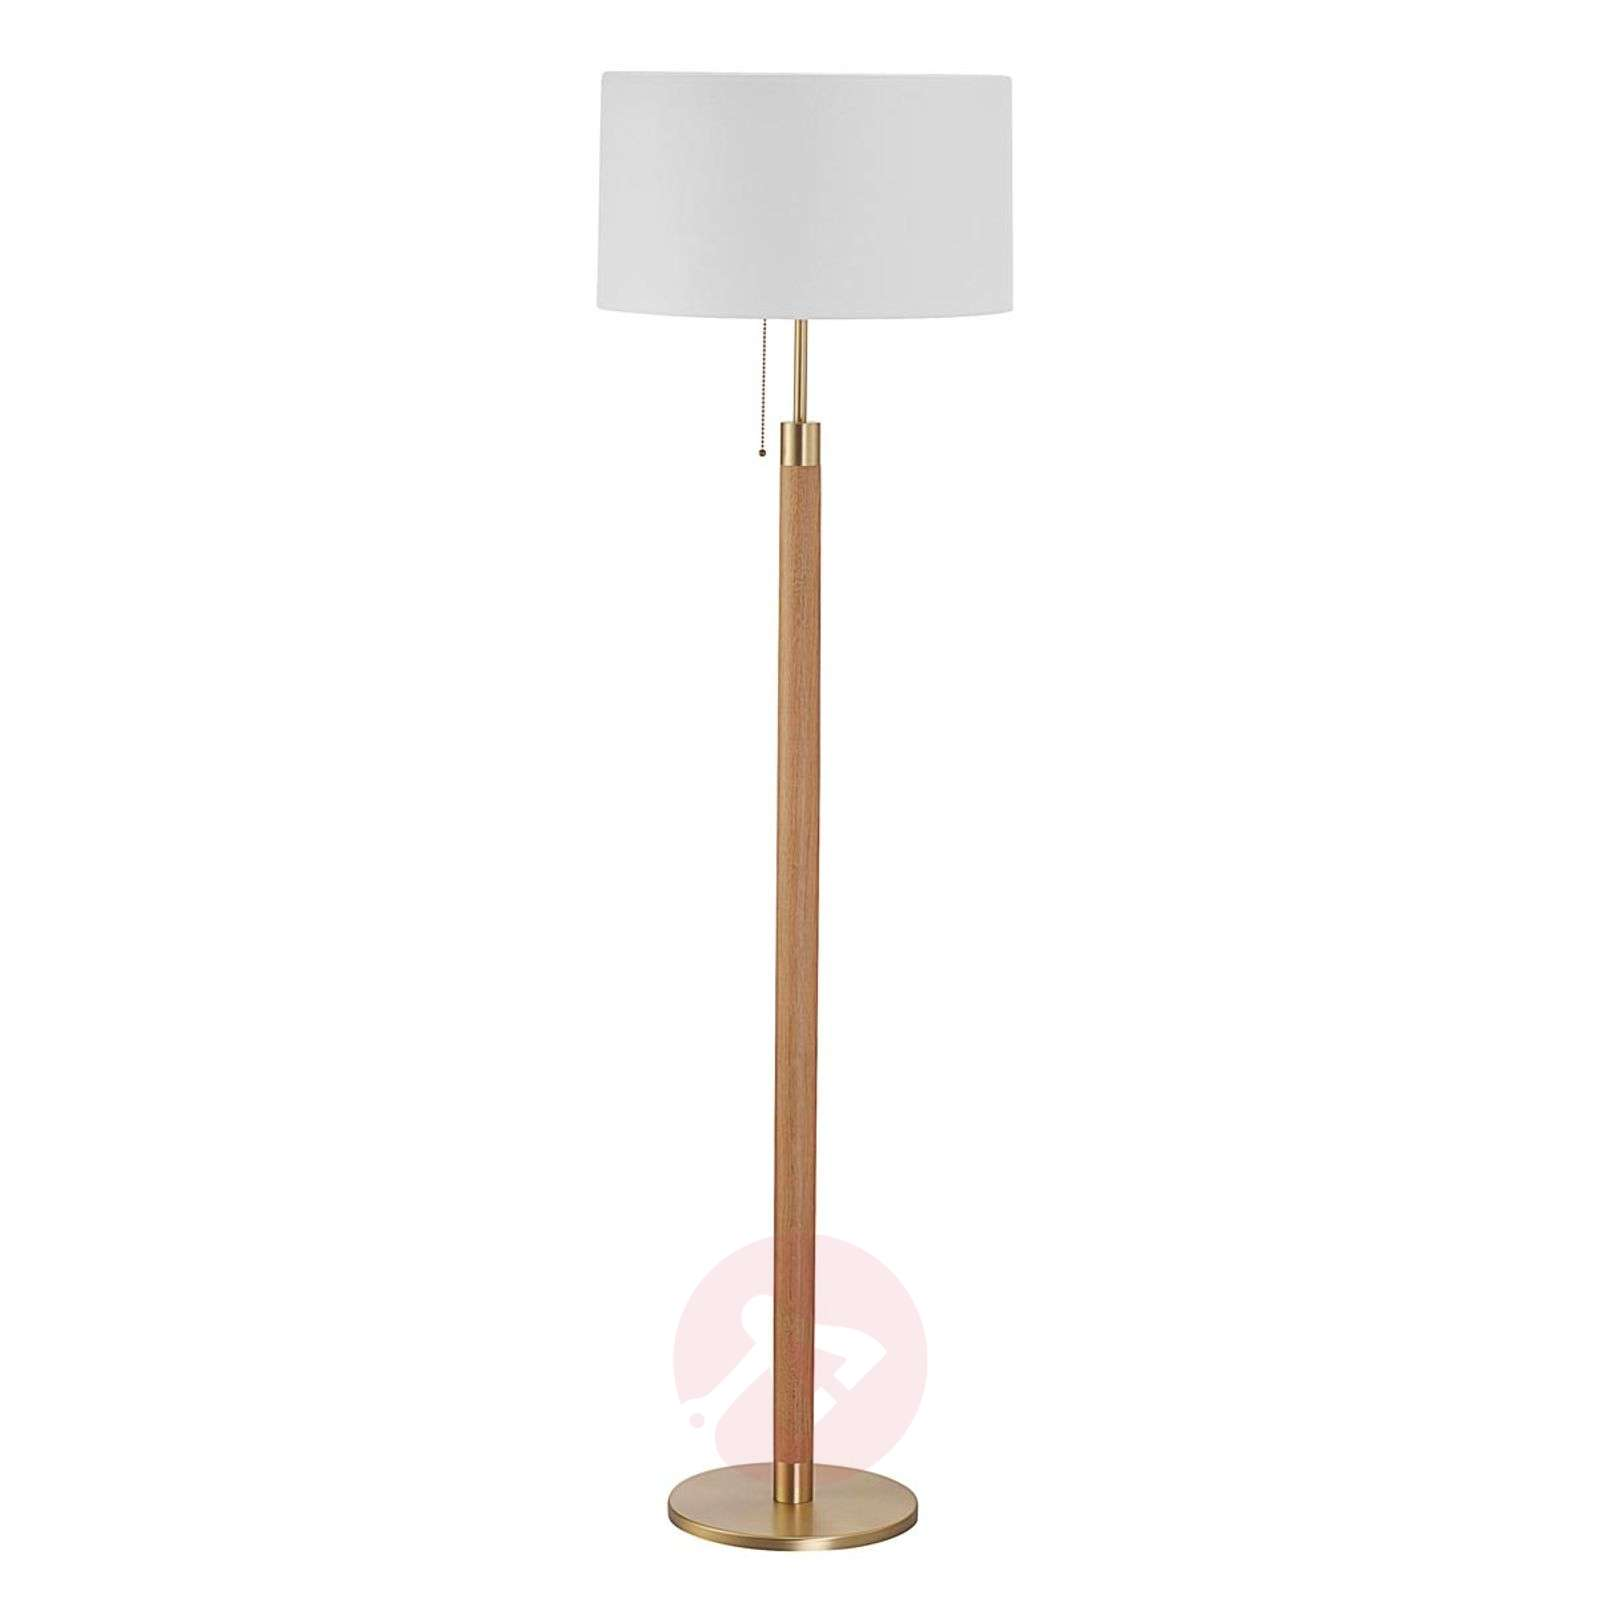 Wooden floor lamp Lignum, chintz lampshade, brass